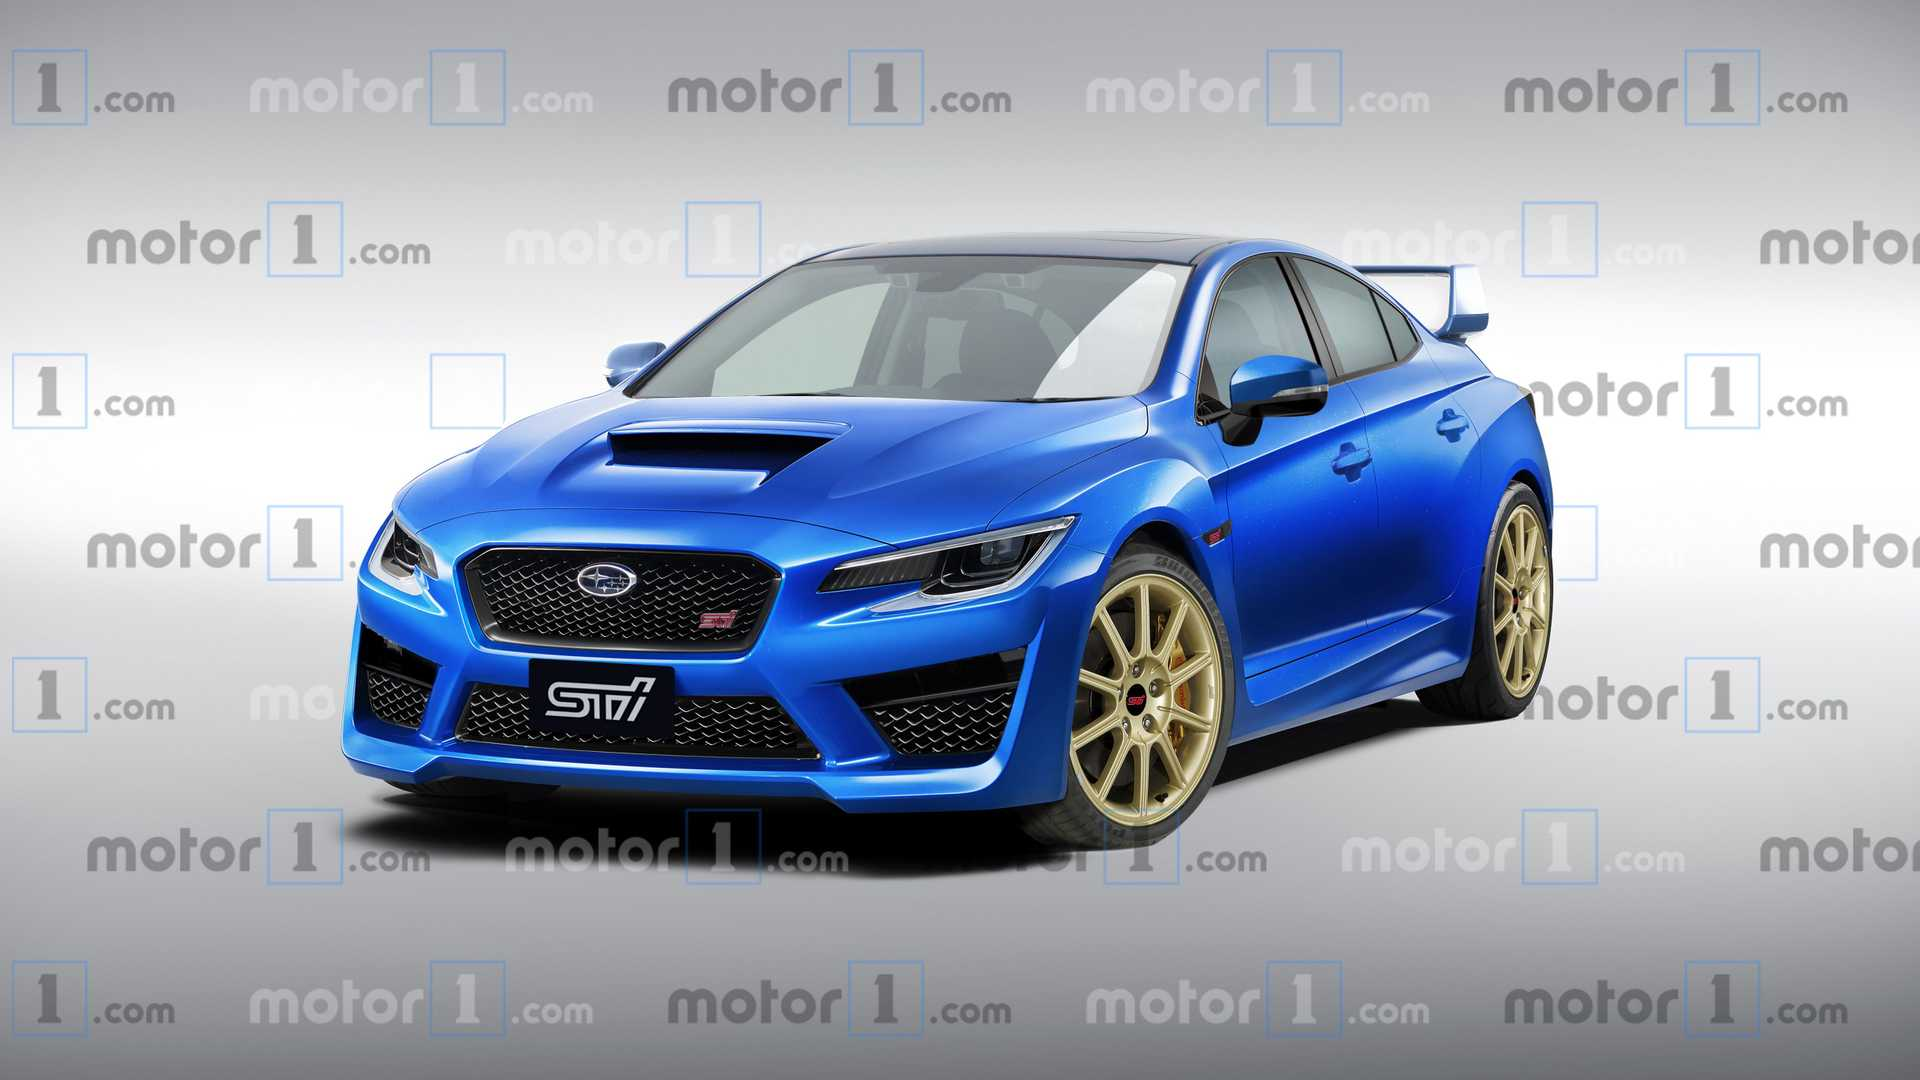 94 The Best 2020 Subaru Impreza Review and Release date